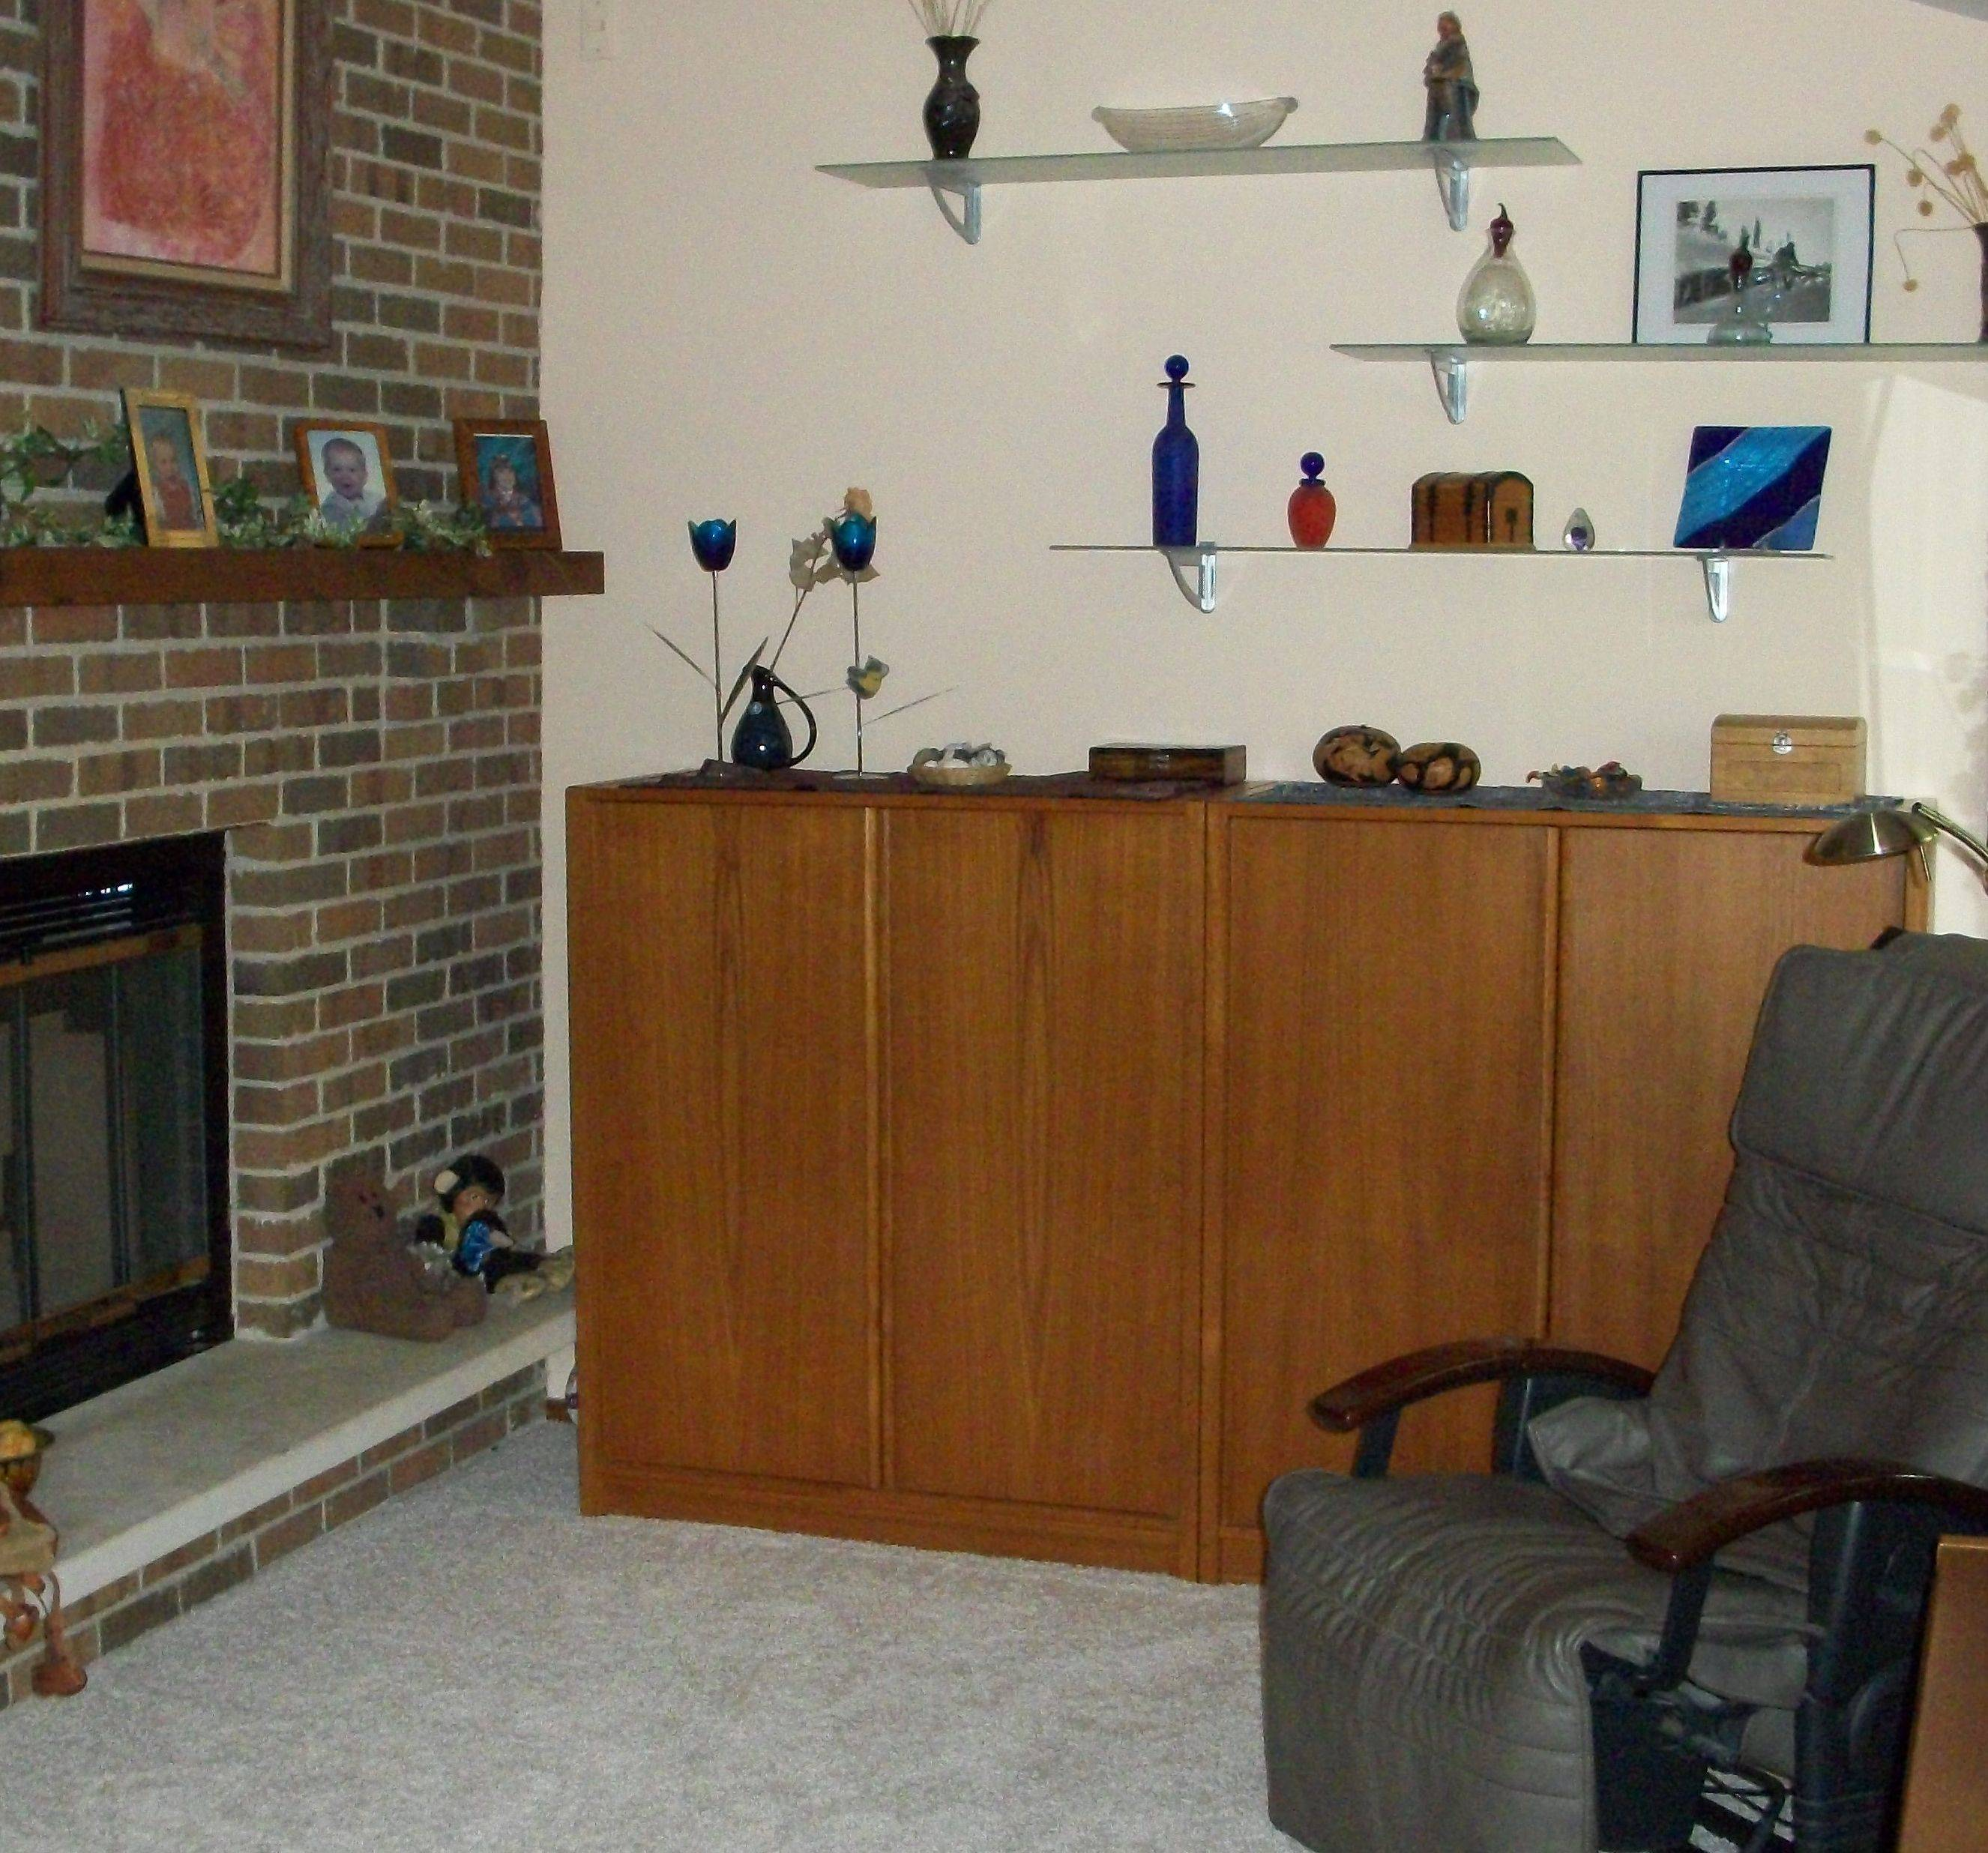 Personal belongings lined the shelves in the master bedroom near the fireplace and on the fireplace mantel prior to when the room was redesigned.